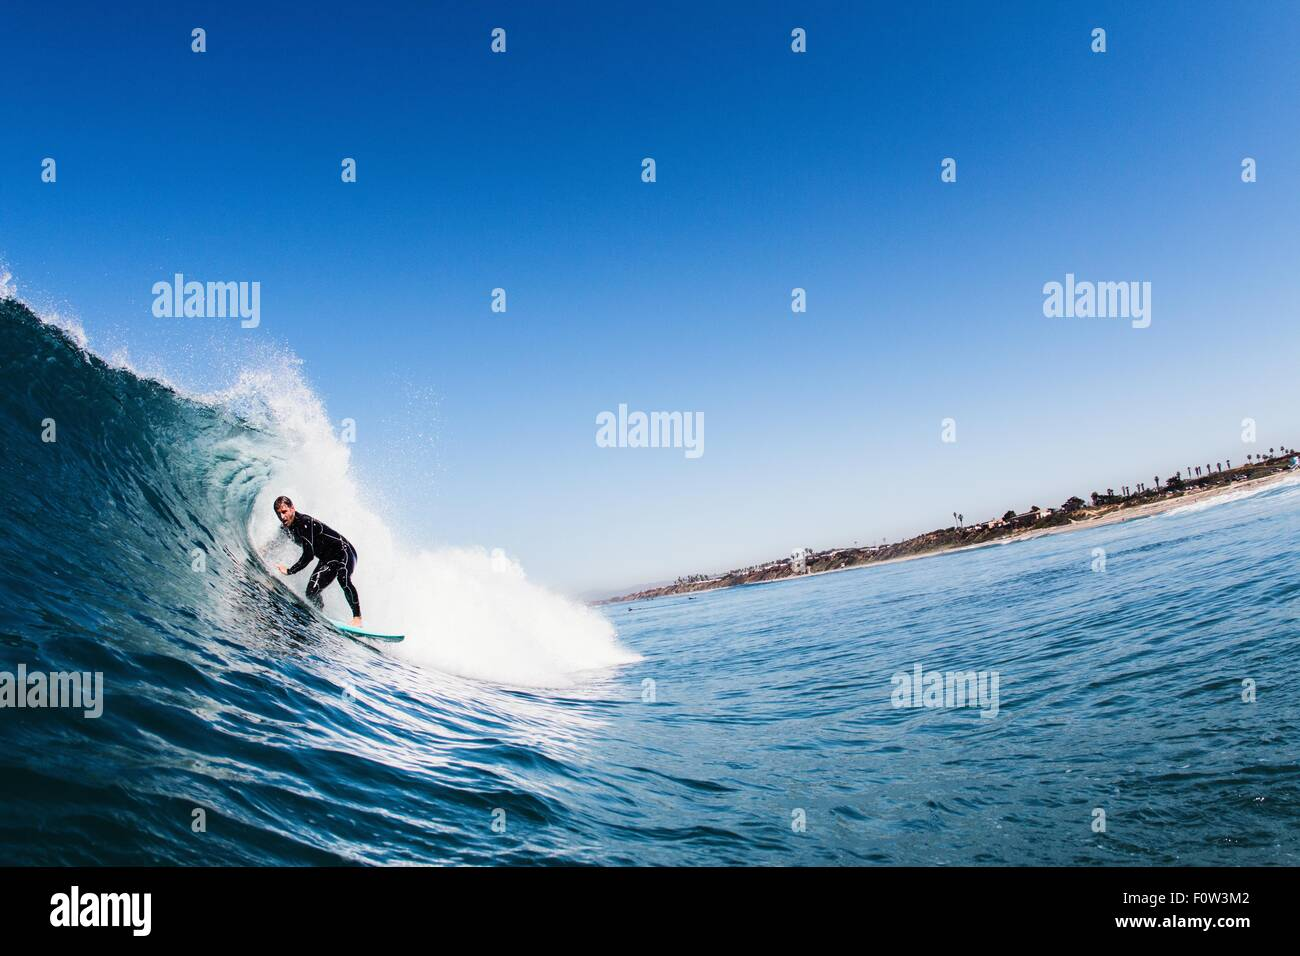 Mid adult male surfer surfing curved wave, Carlsbad, California, USA - Stock Image